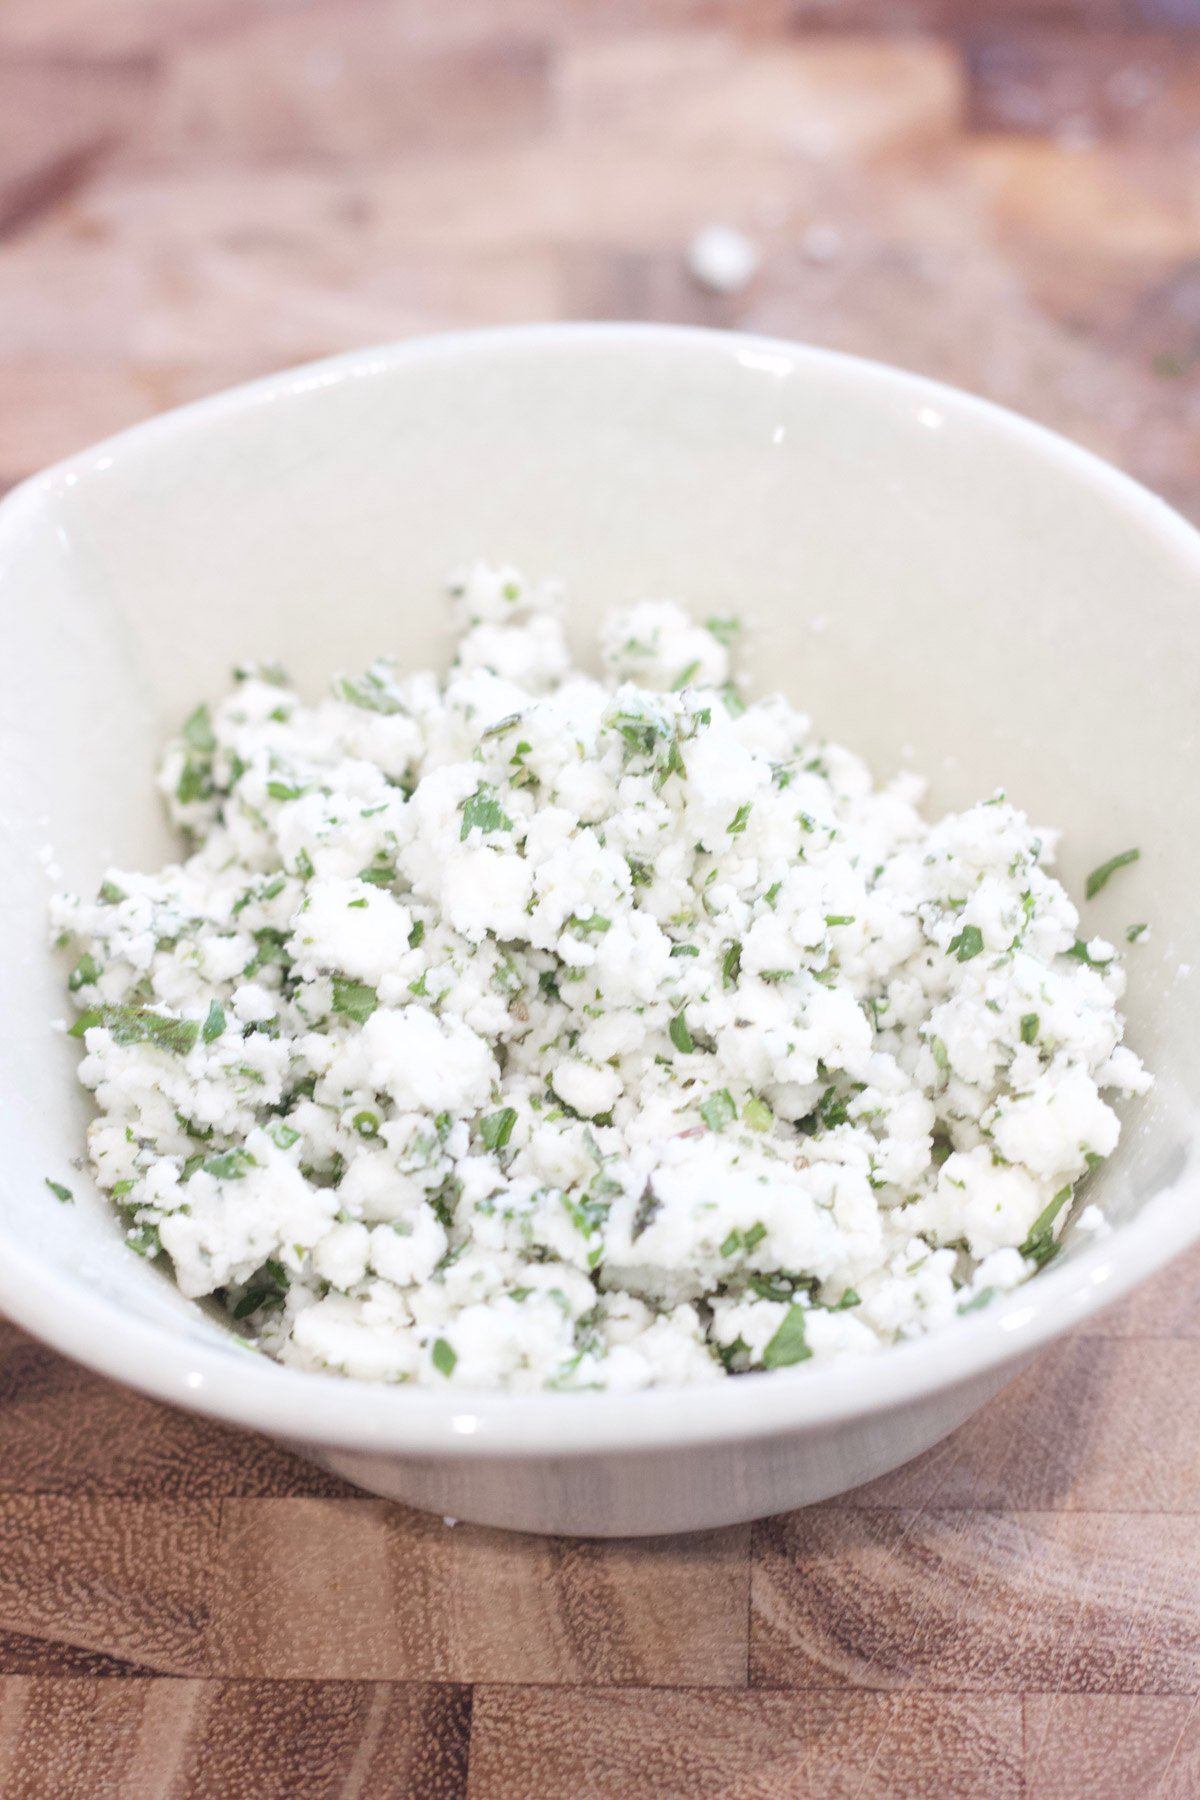 Herbed feta cheese in a bowl